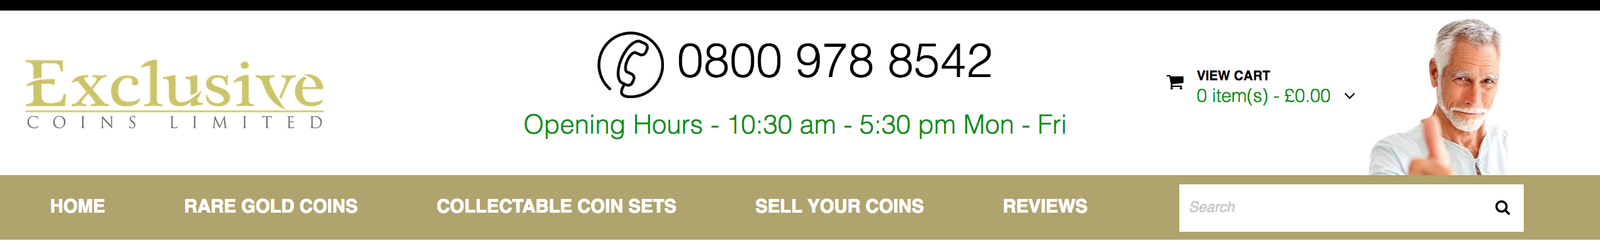 Buy Coins and Coin Supplies